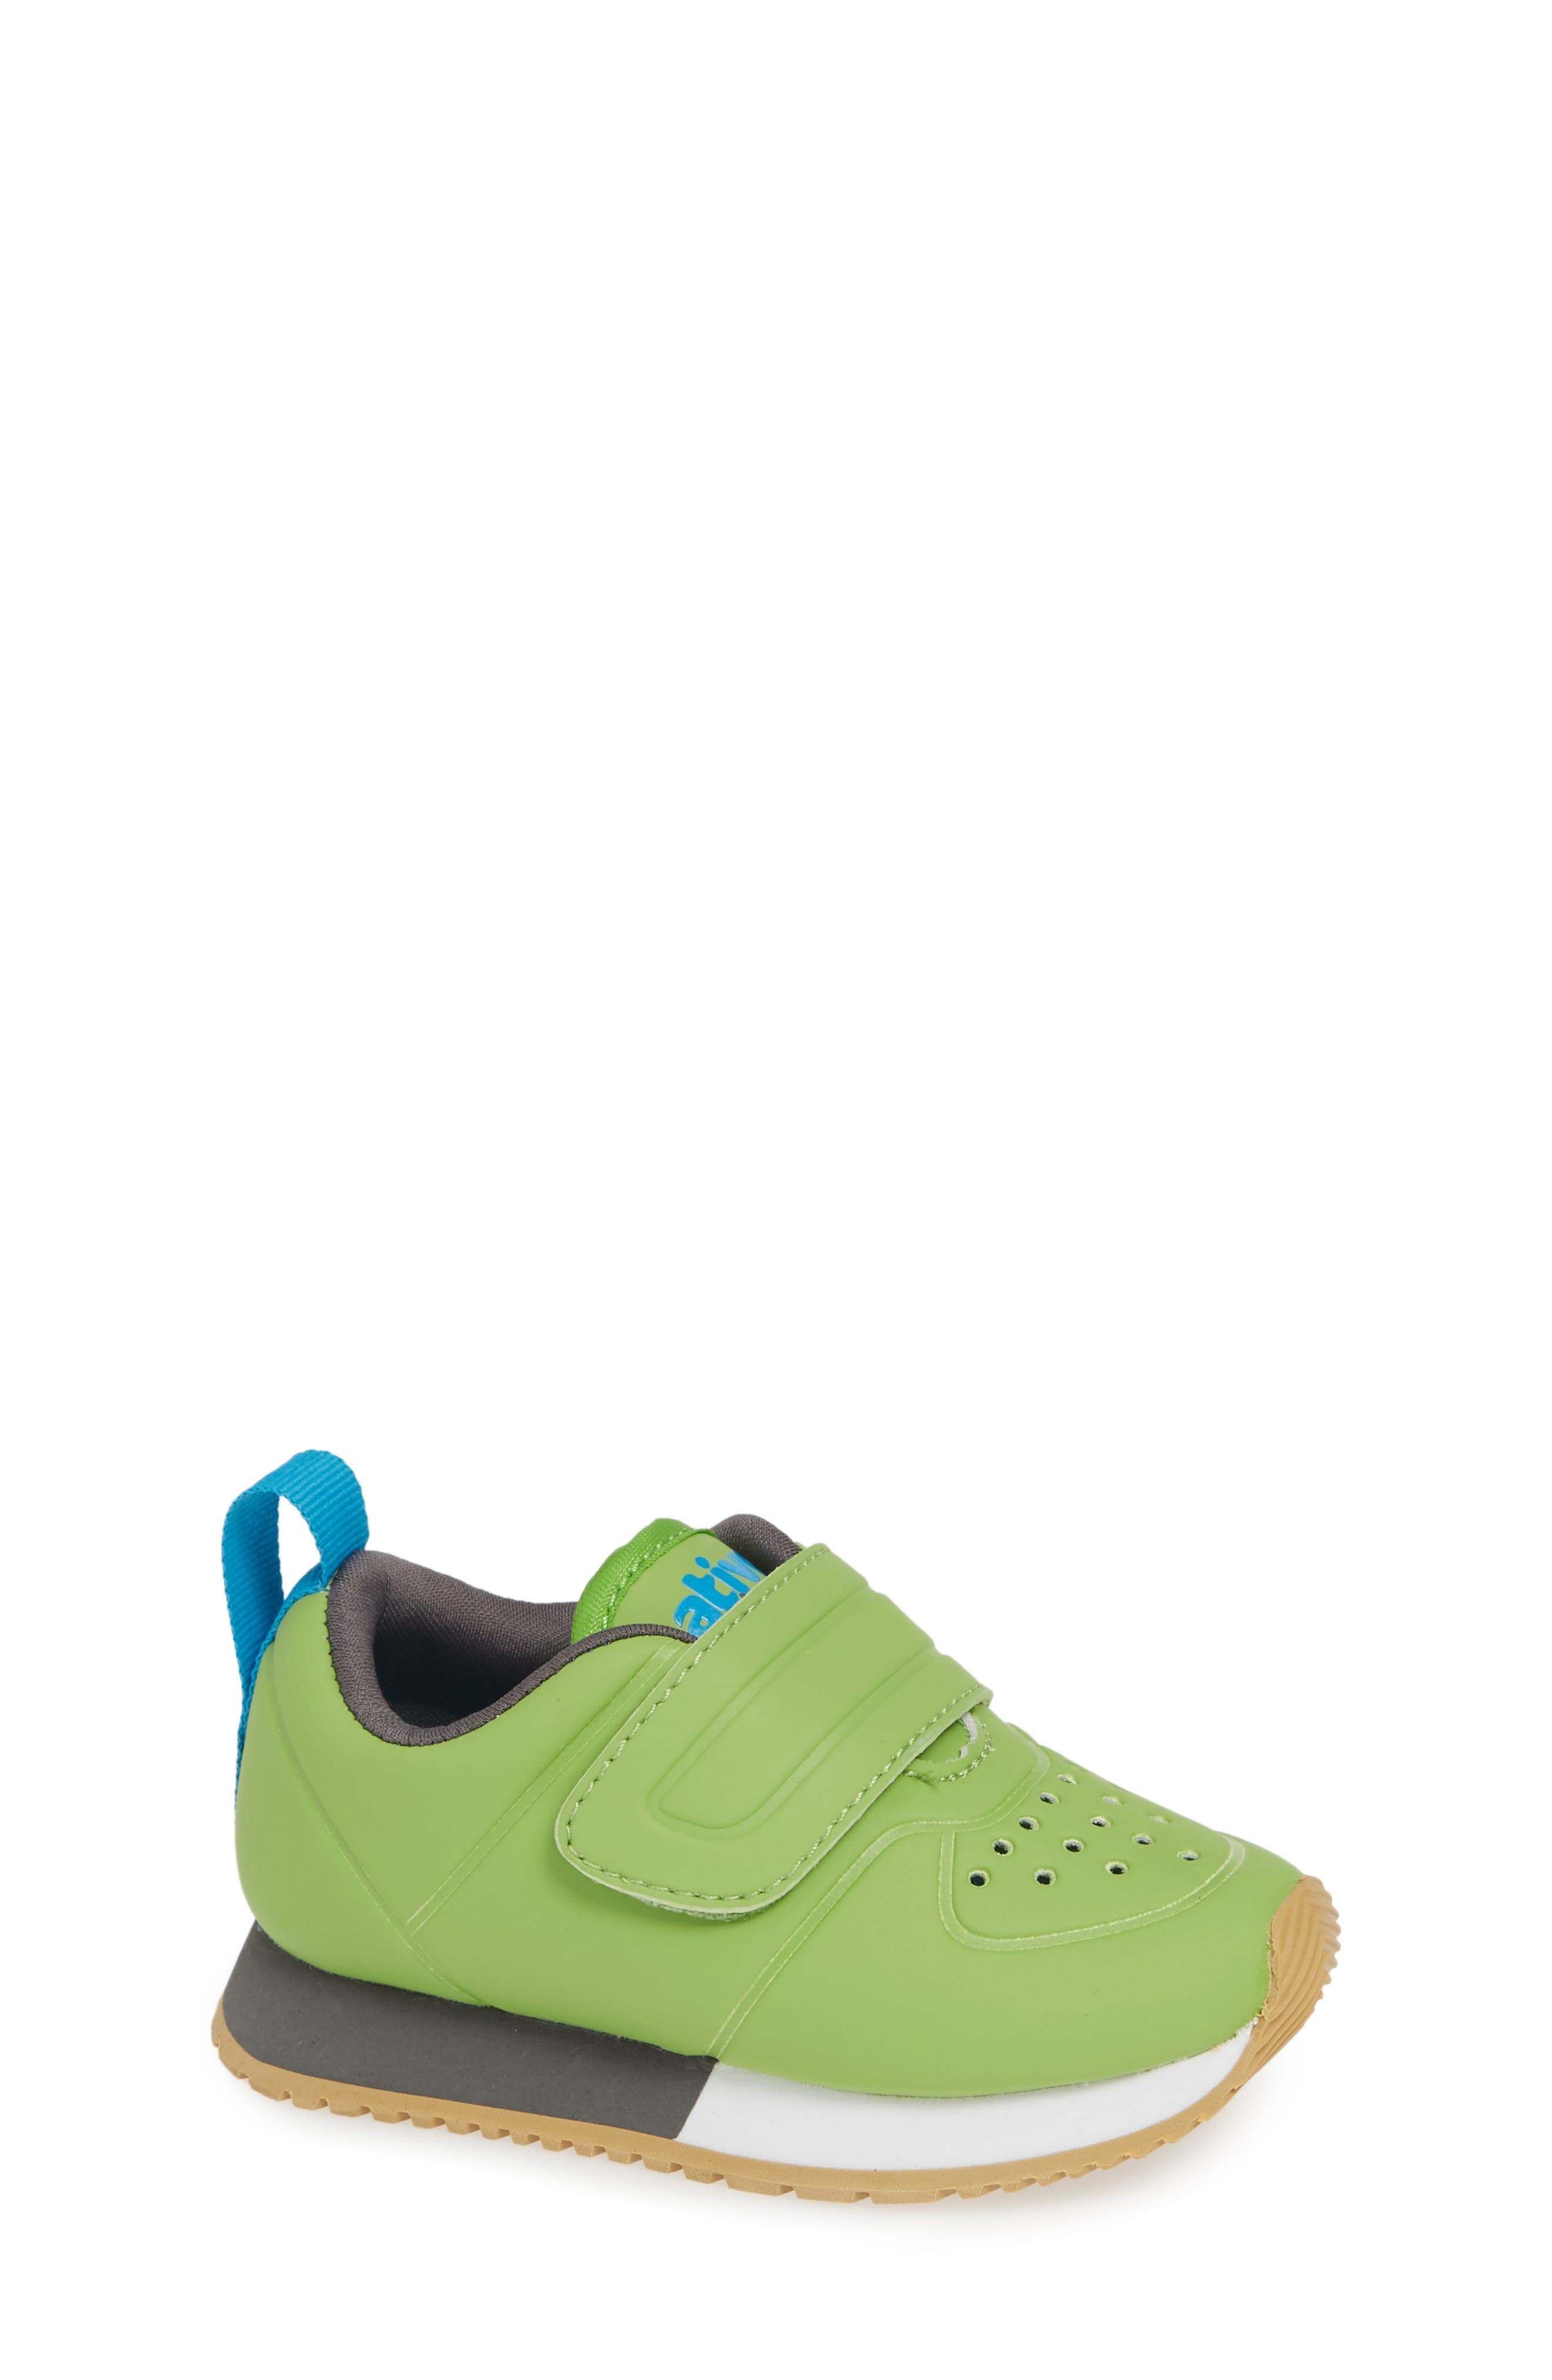 Cornell Perforated Colorblock Sneaker,                         Main,                         color, SPRING GREEN/ WHITE/ GREY